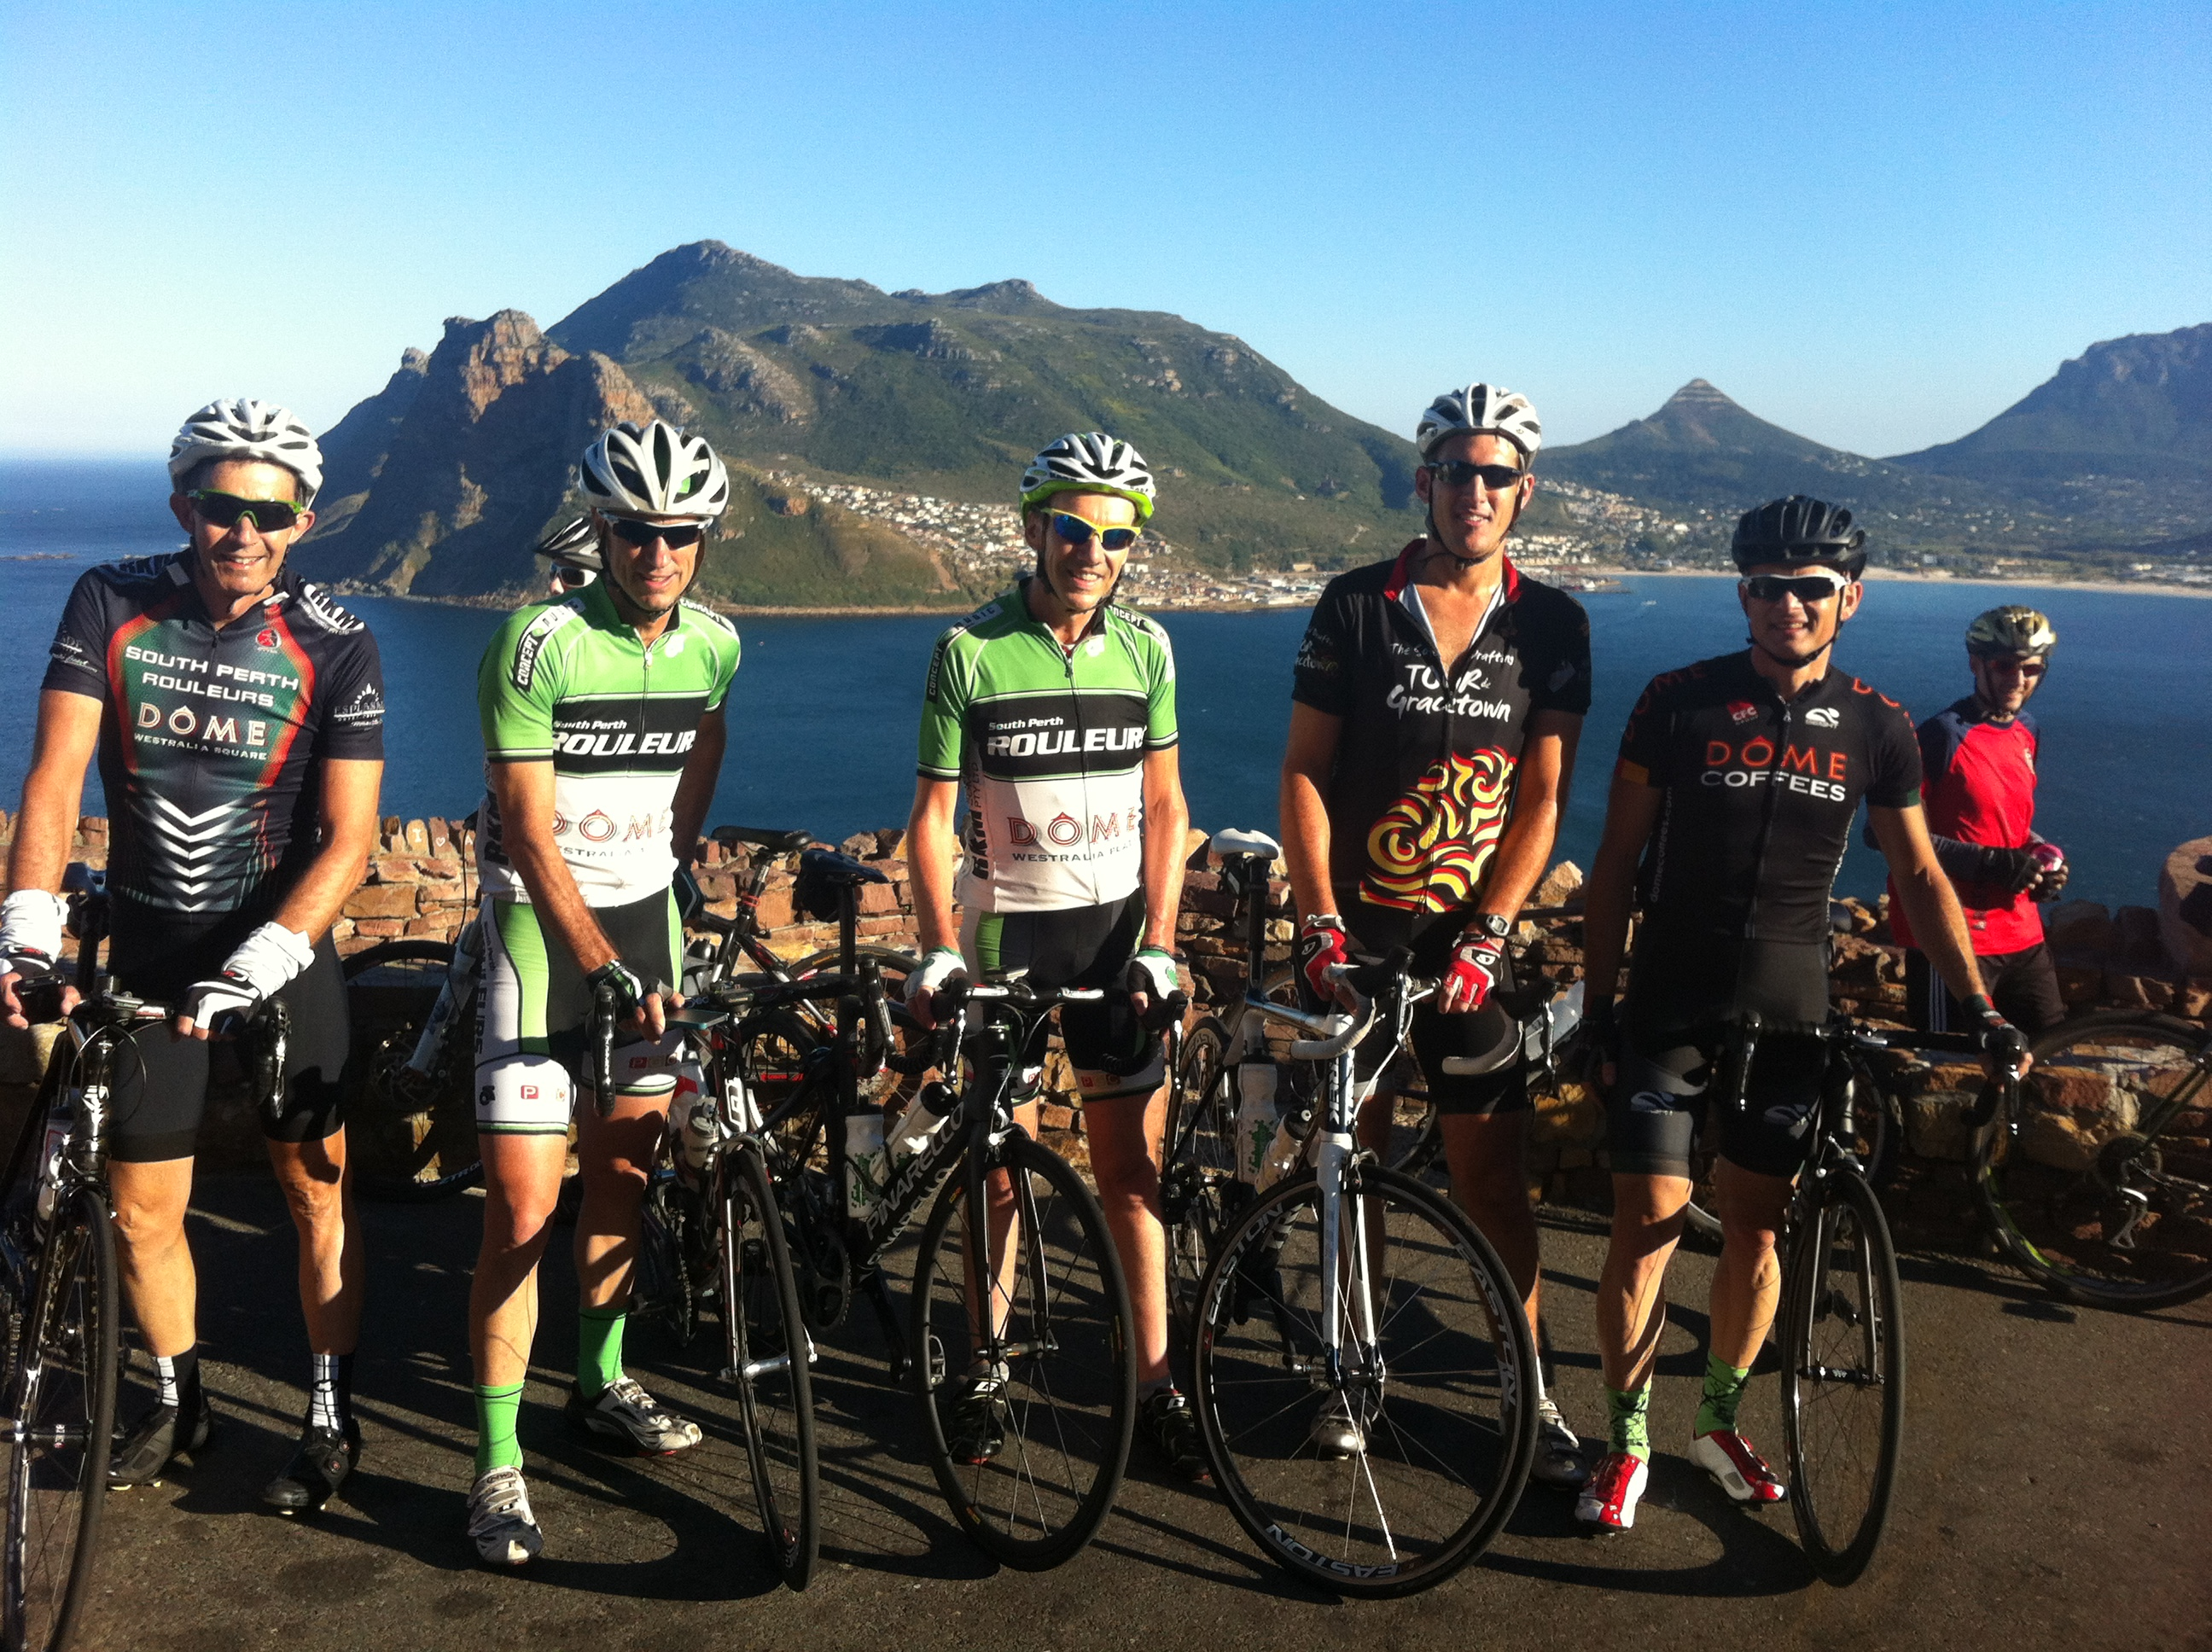 Team SPR at Chappies Peak, Cape Town, 28 Feb 2015